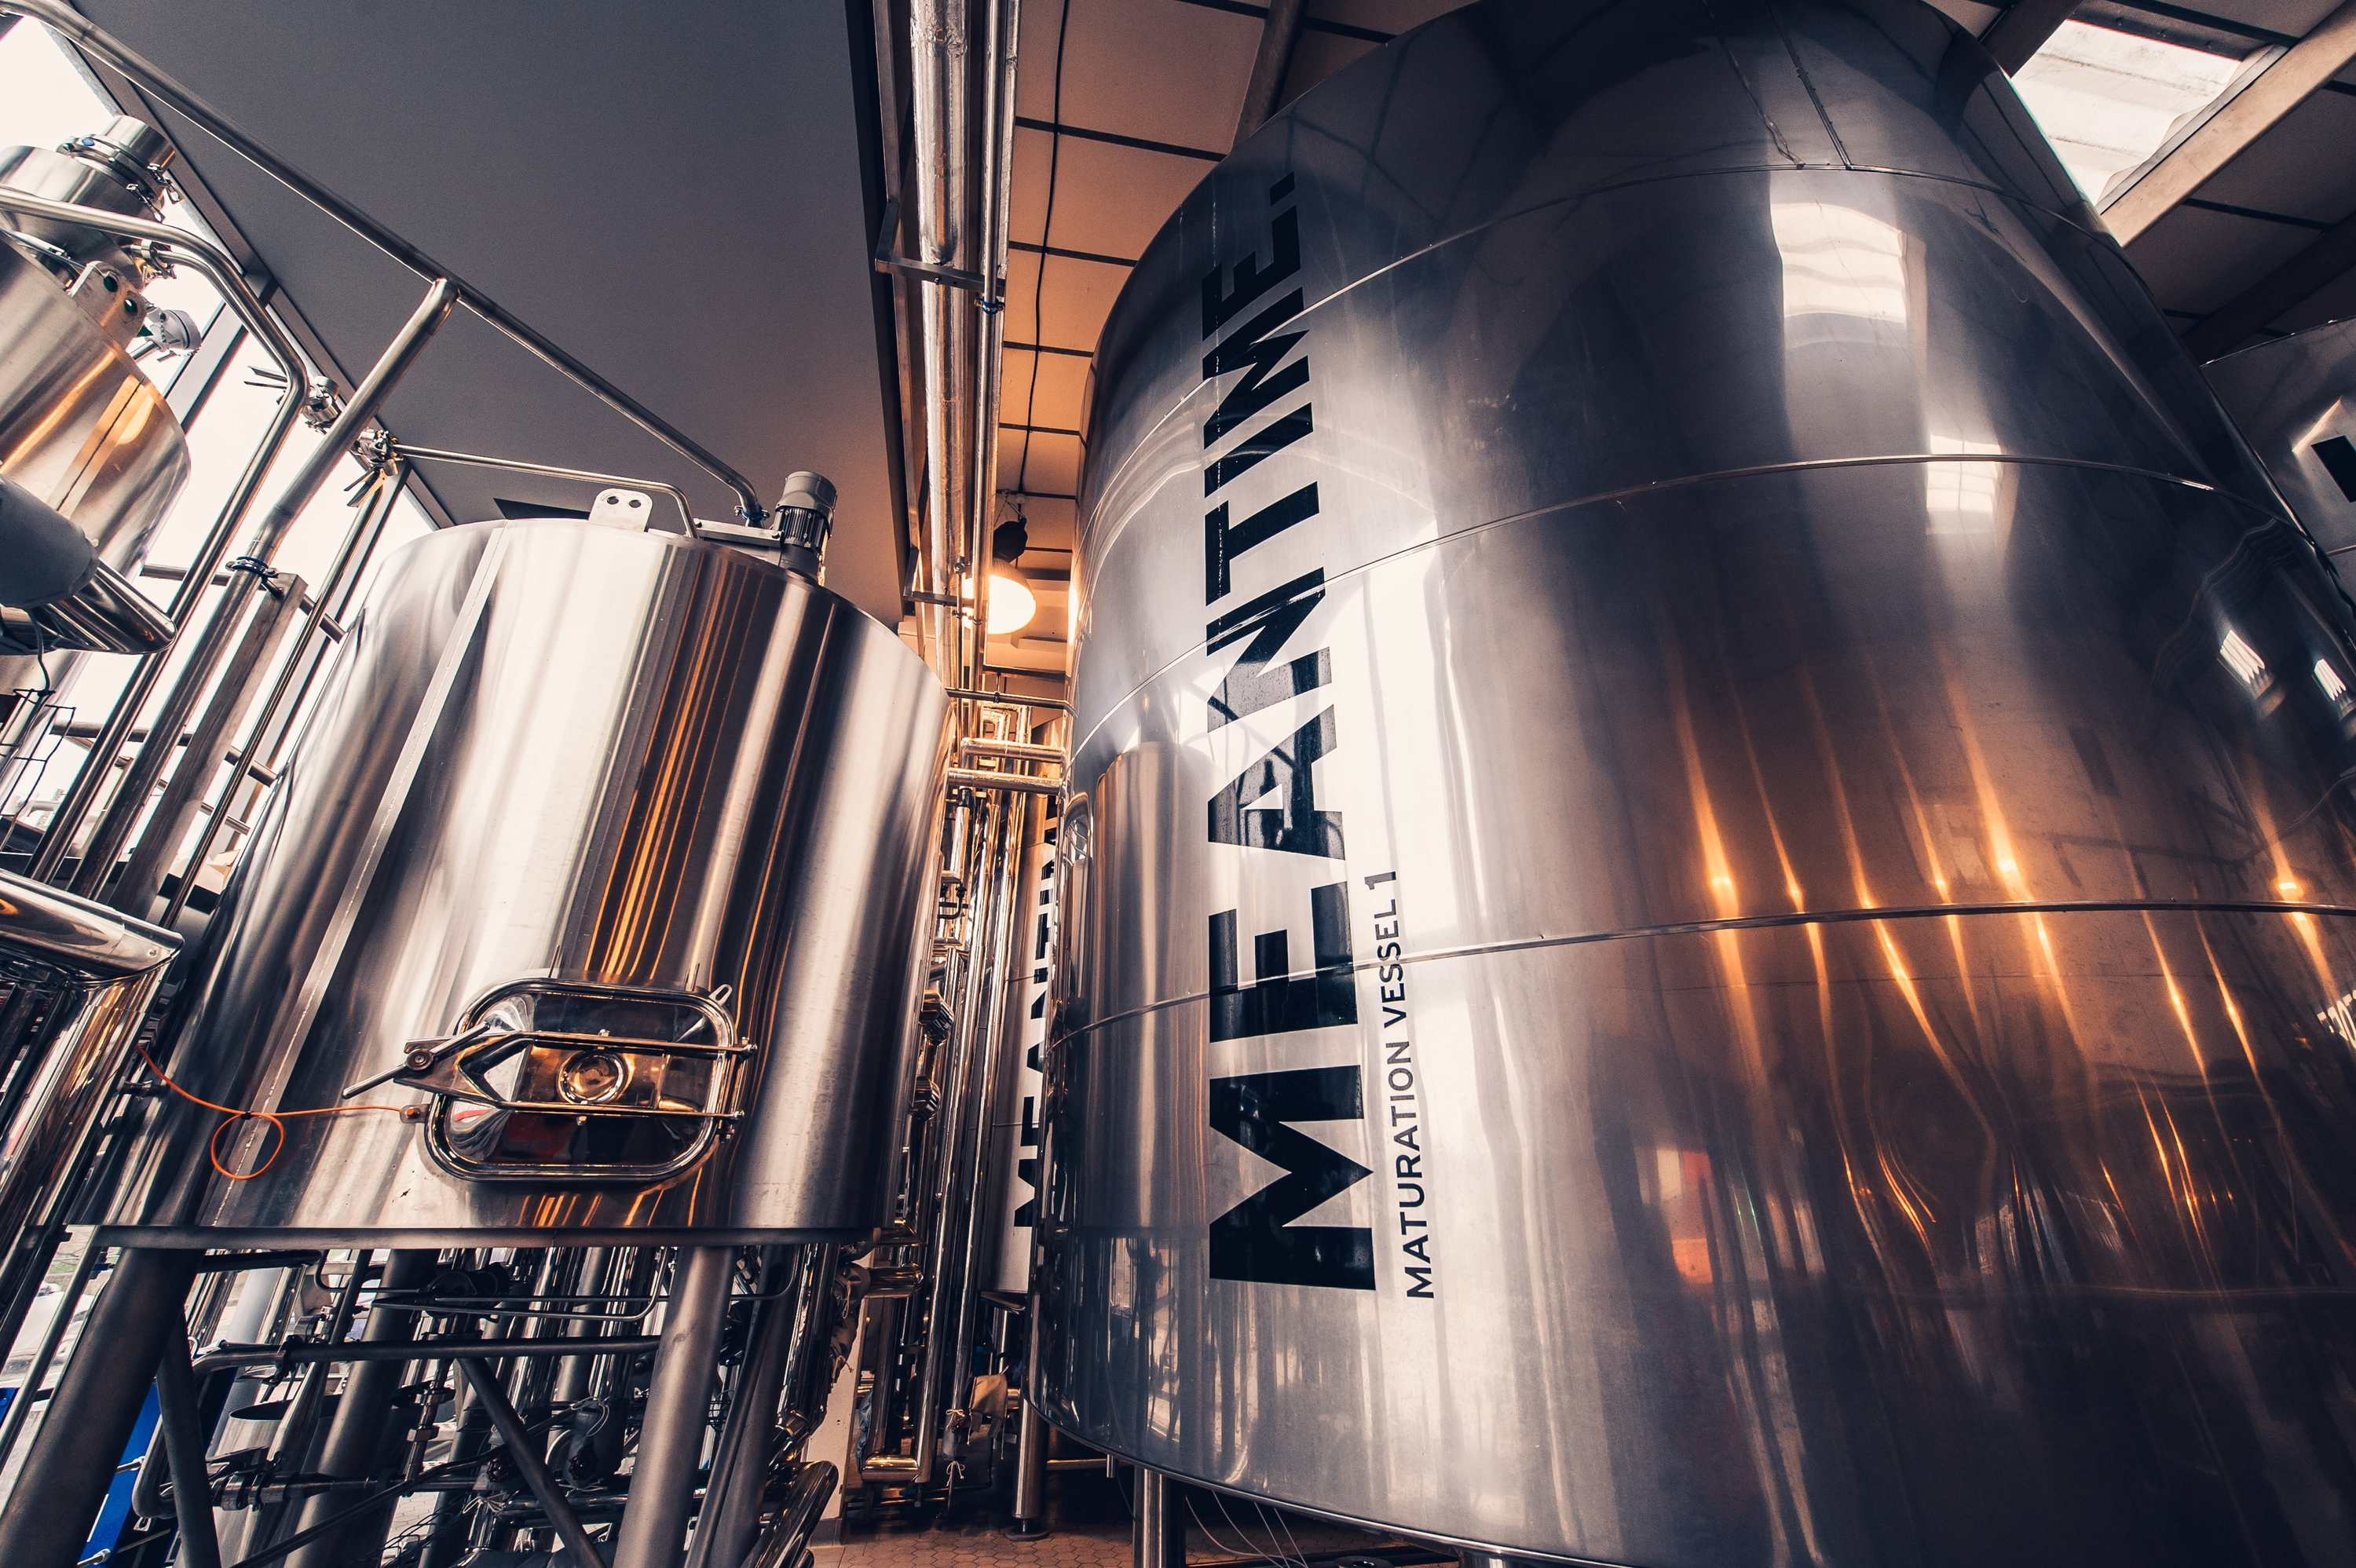 Meantime Brewing Company Brewery Tours